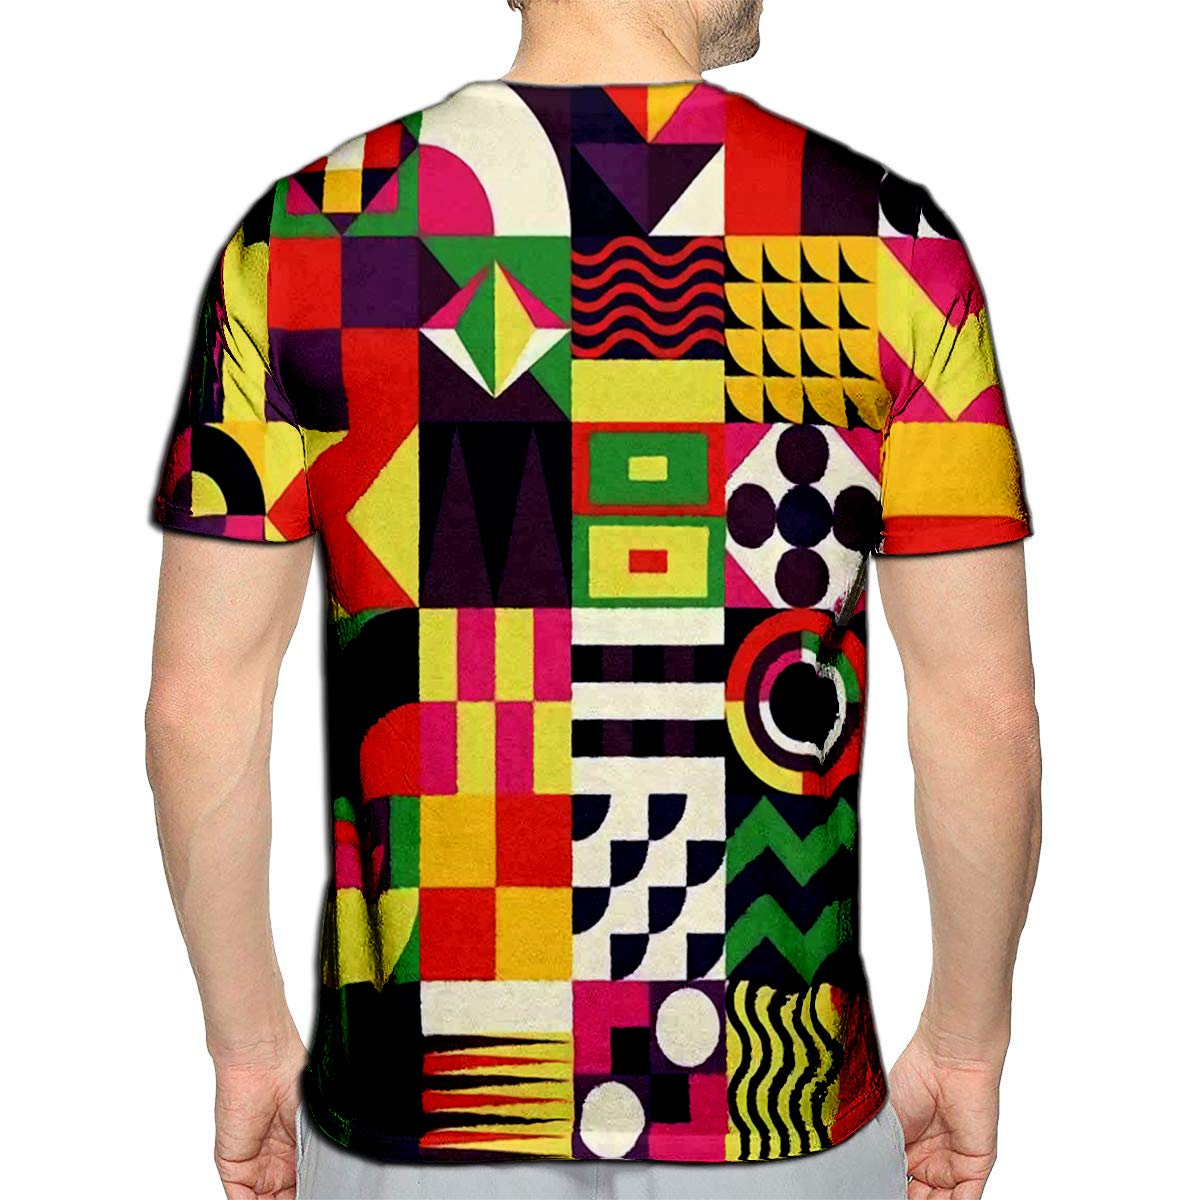 YILINGER 3D Printed T-Shirts Contemporary Geometric Mosaic with Vibrant Color Scheme Repeat Short Sleeve Tops Tees